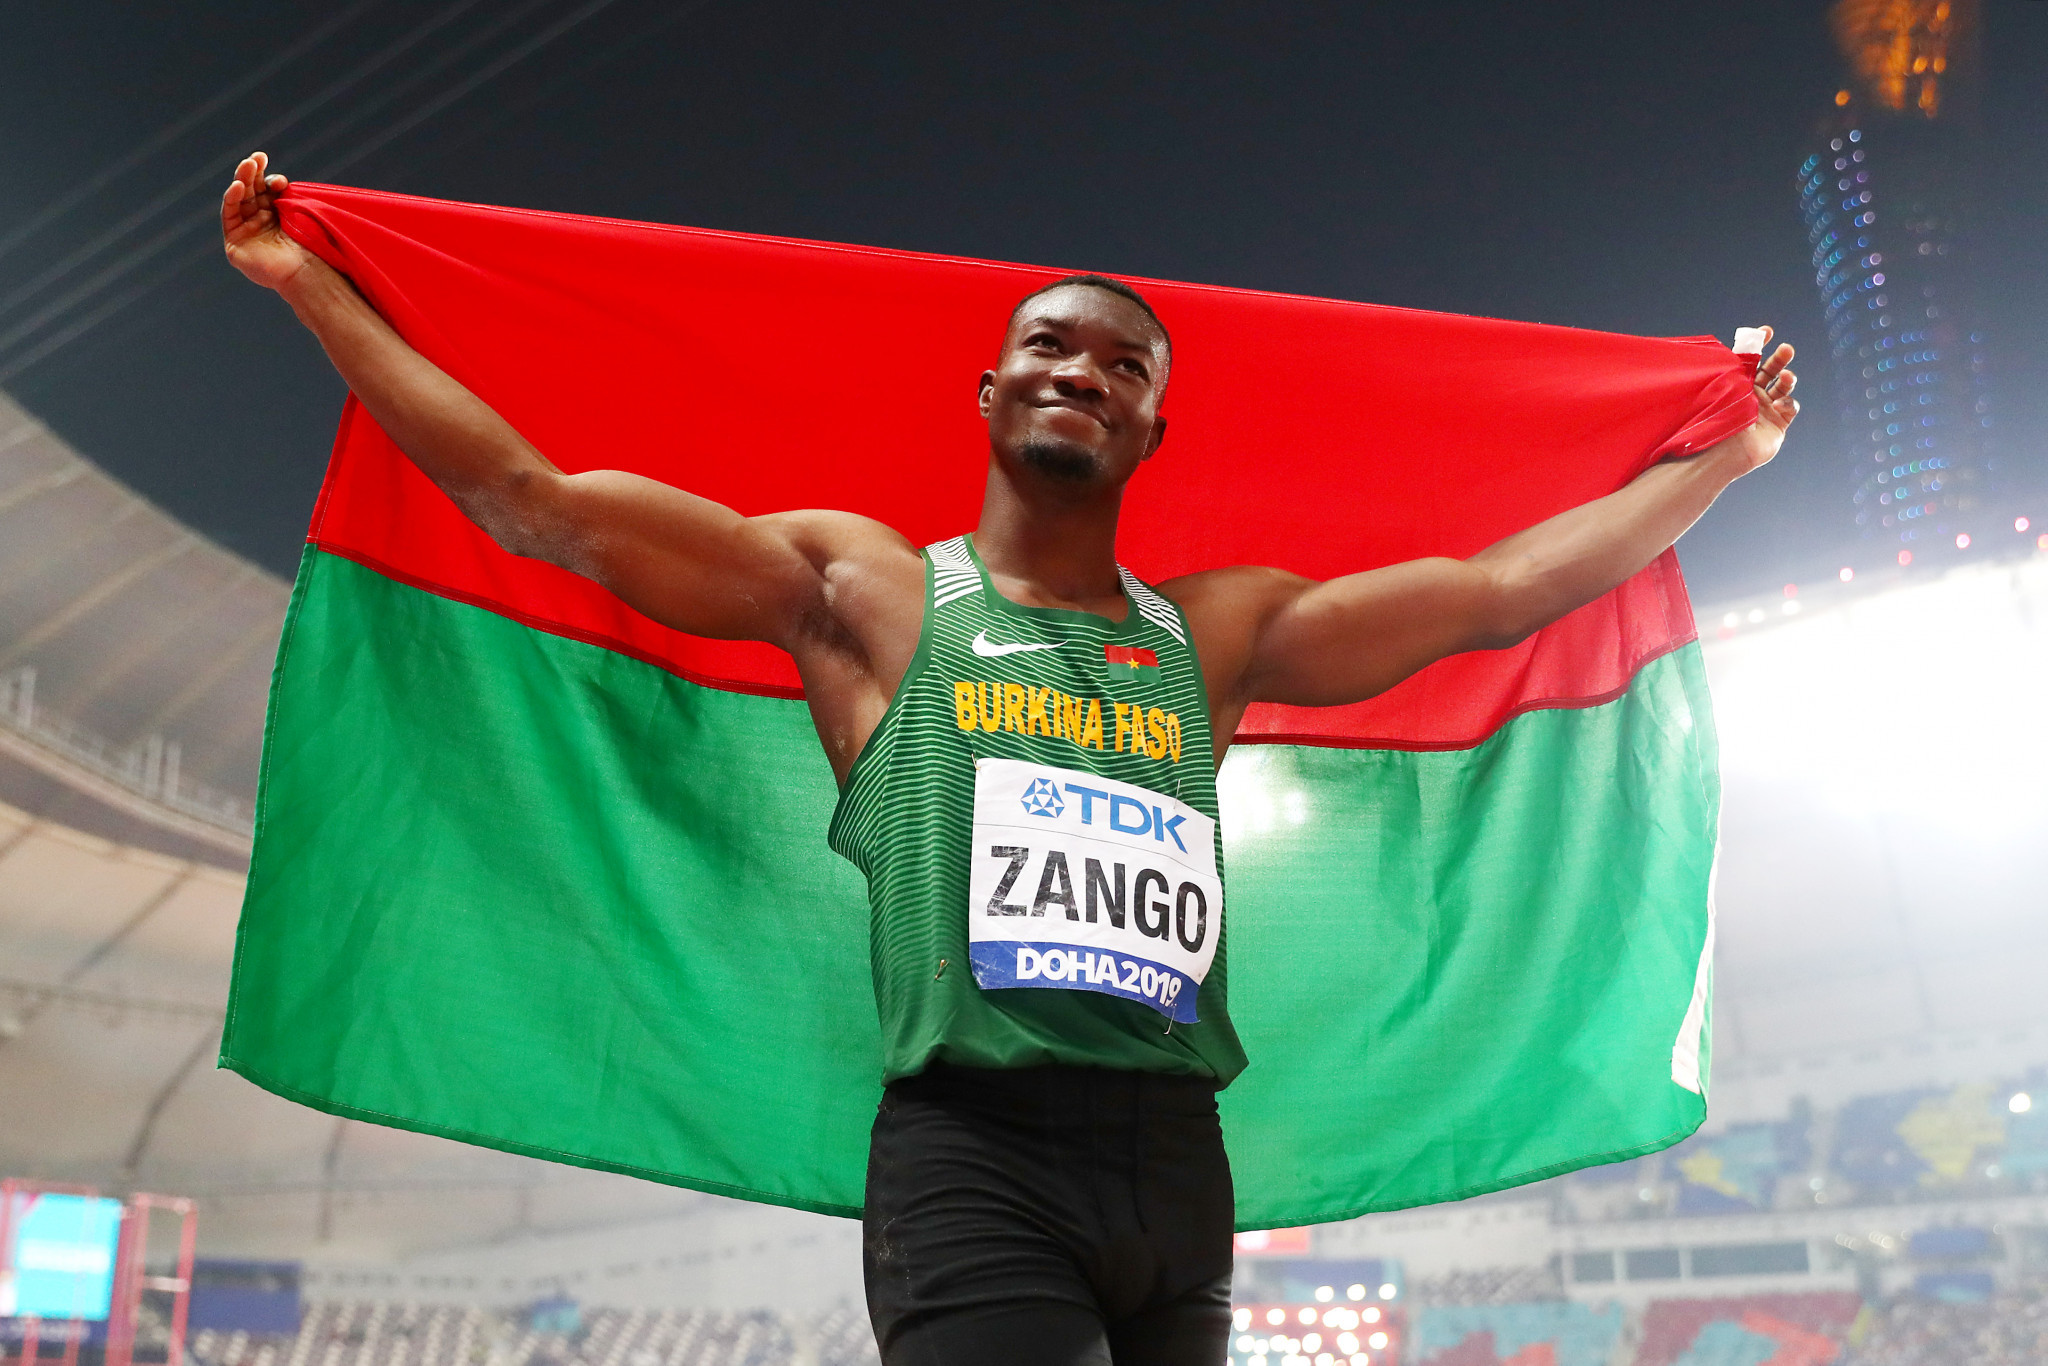 Hugues Fabrice Zango of Burkina Faso is now targeting Tokyo 2020 ©Getty Images